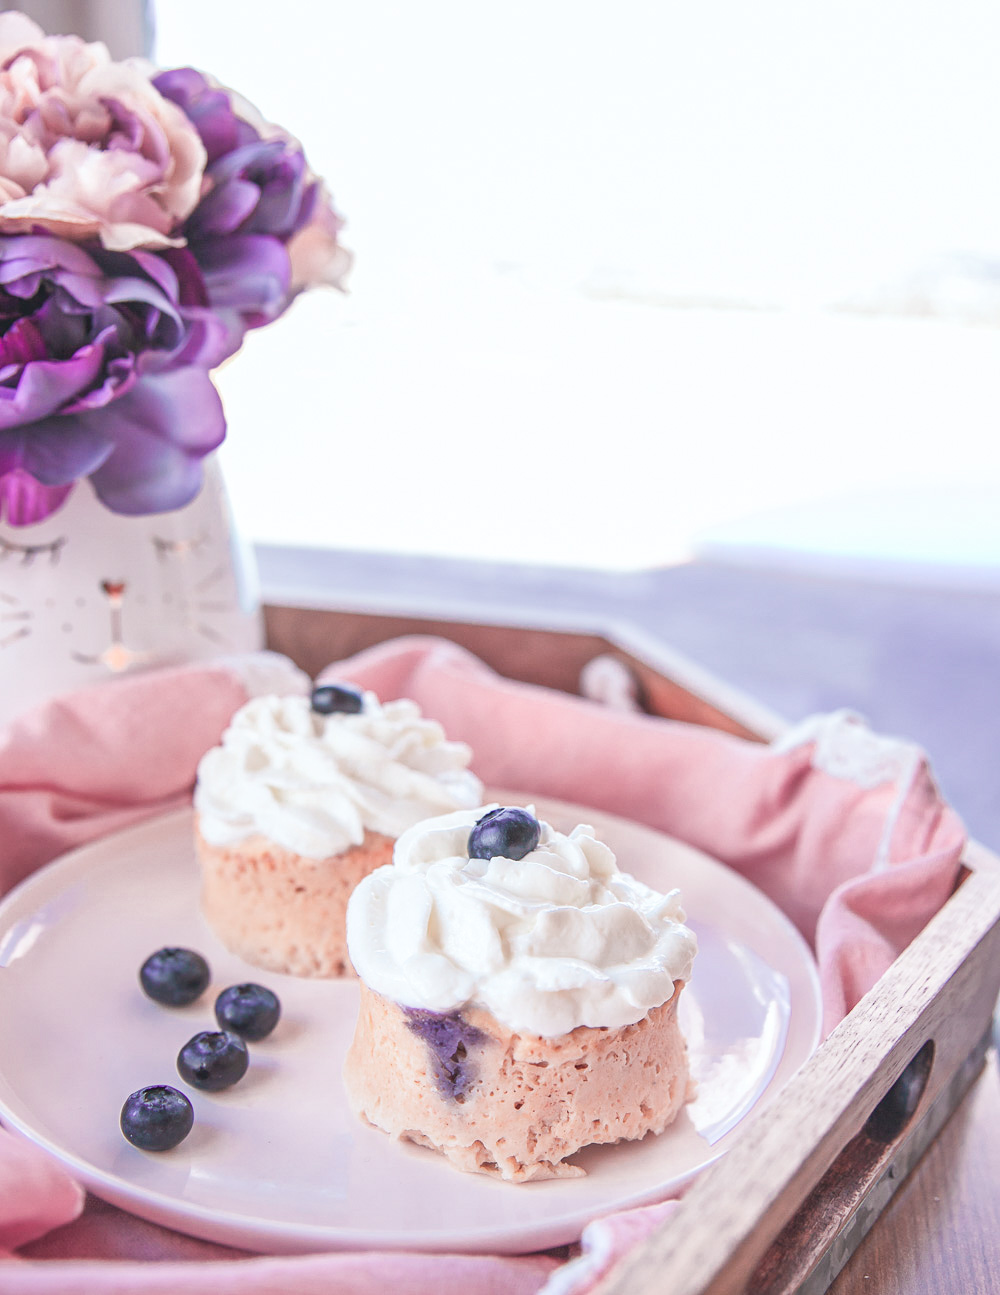 Healthy Blueberry Cupcakes Recipe: they are low calorie, all-natural, wholesome and beautiful! #healthydessert #healthysnack #lowcaloriedessert #lowcaloriesnack #lowcalorie #lowcalorierecipe #healthy #healthyrecipe #healthydessertrecipe #lowcaloriemeal #wholegrain #easyrecipe #healthycupcake #lowcaloriecupcake #healthycupcakes #lowcaloriecupcakes #lowcaloriefrosting